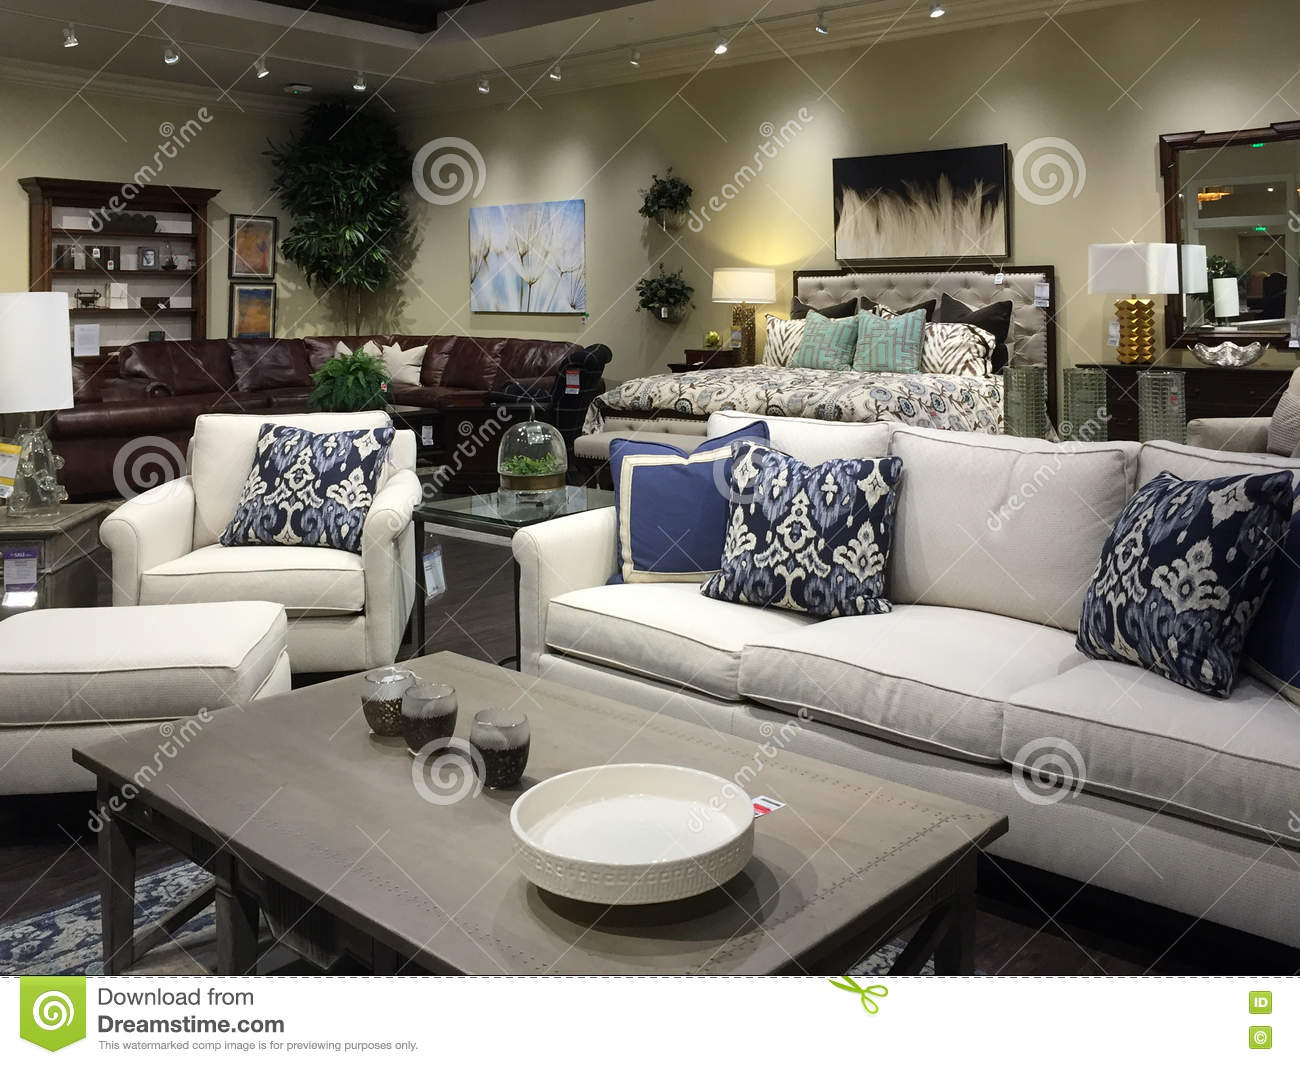 Nice sofa selling at store editorial image 48208040 Home furniture outlet cerritos